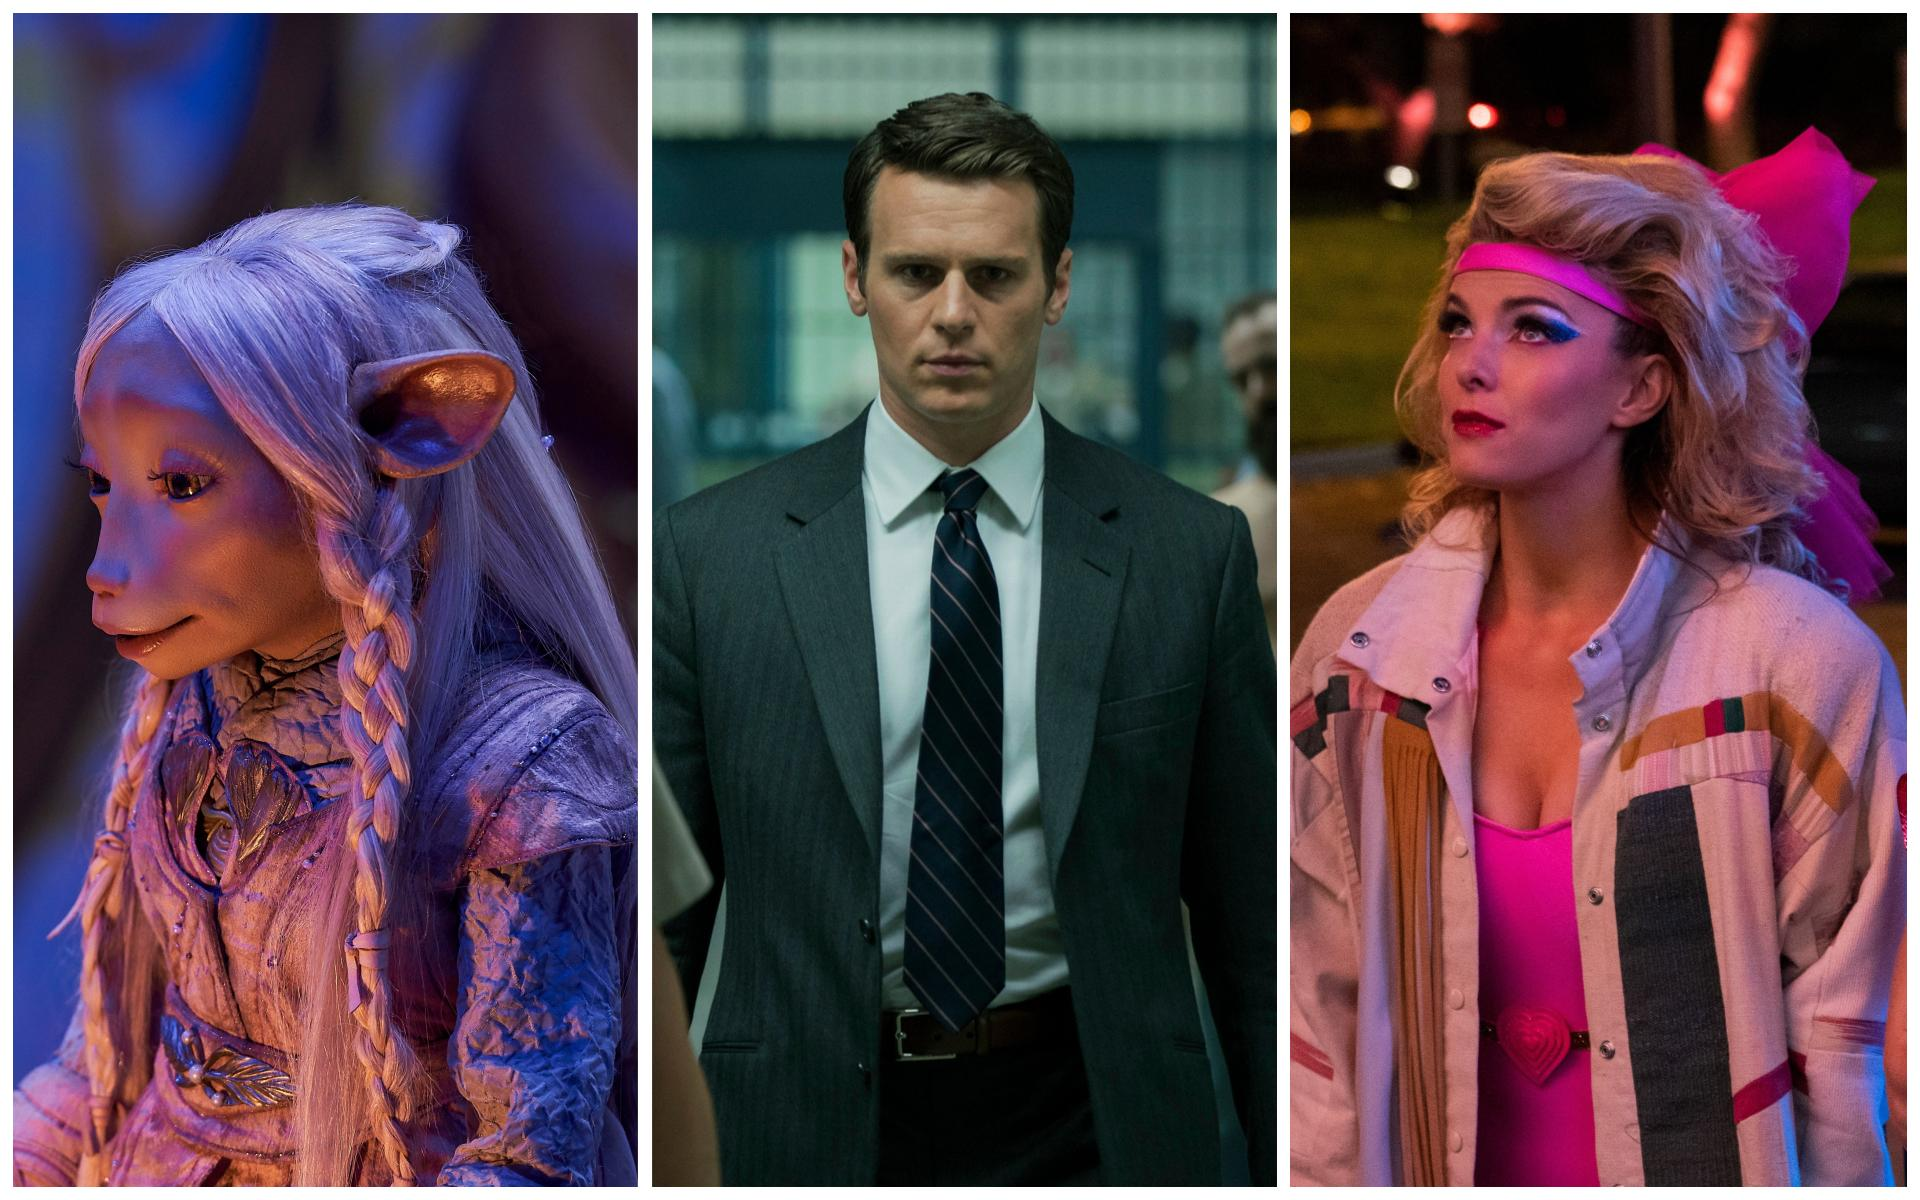 Netflix Is Adding These New Movies And TV Shows In August 2019